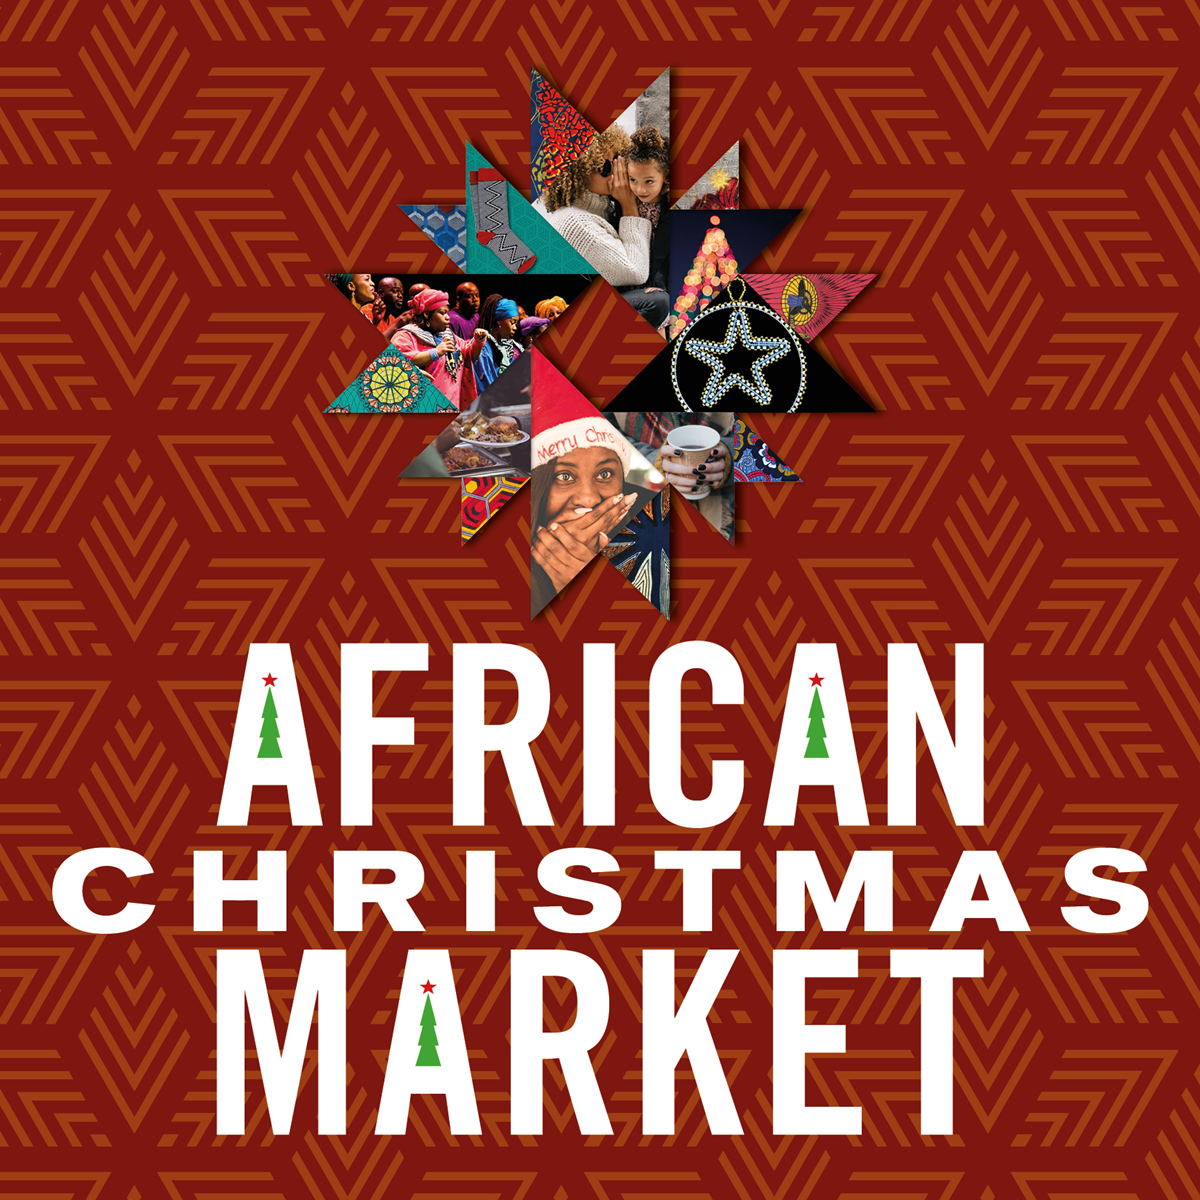 article thumb - African Christmas Market 2017